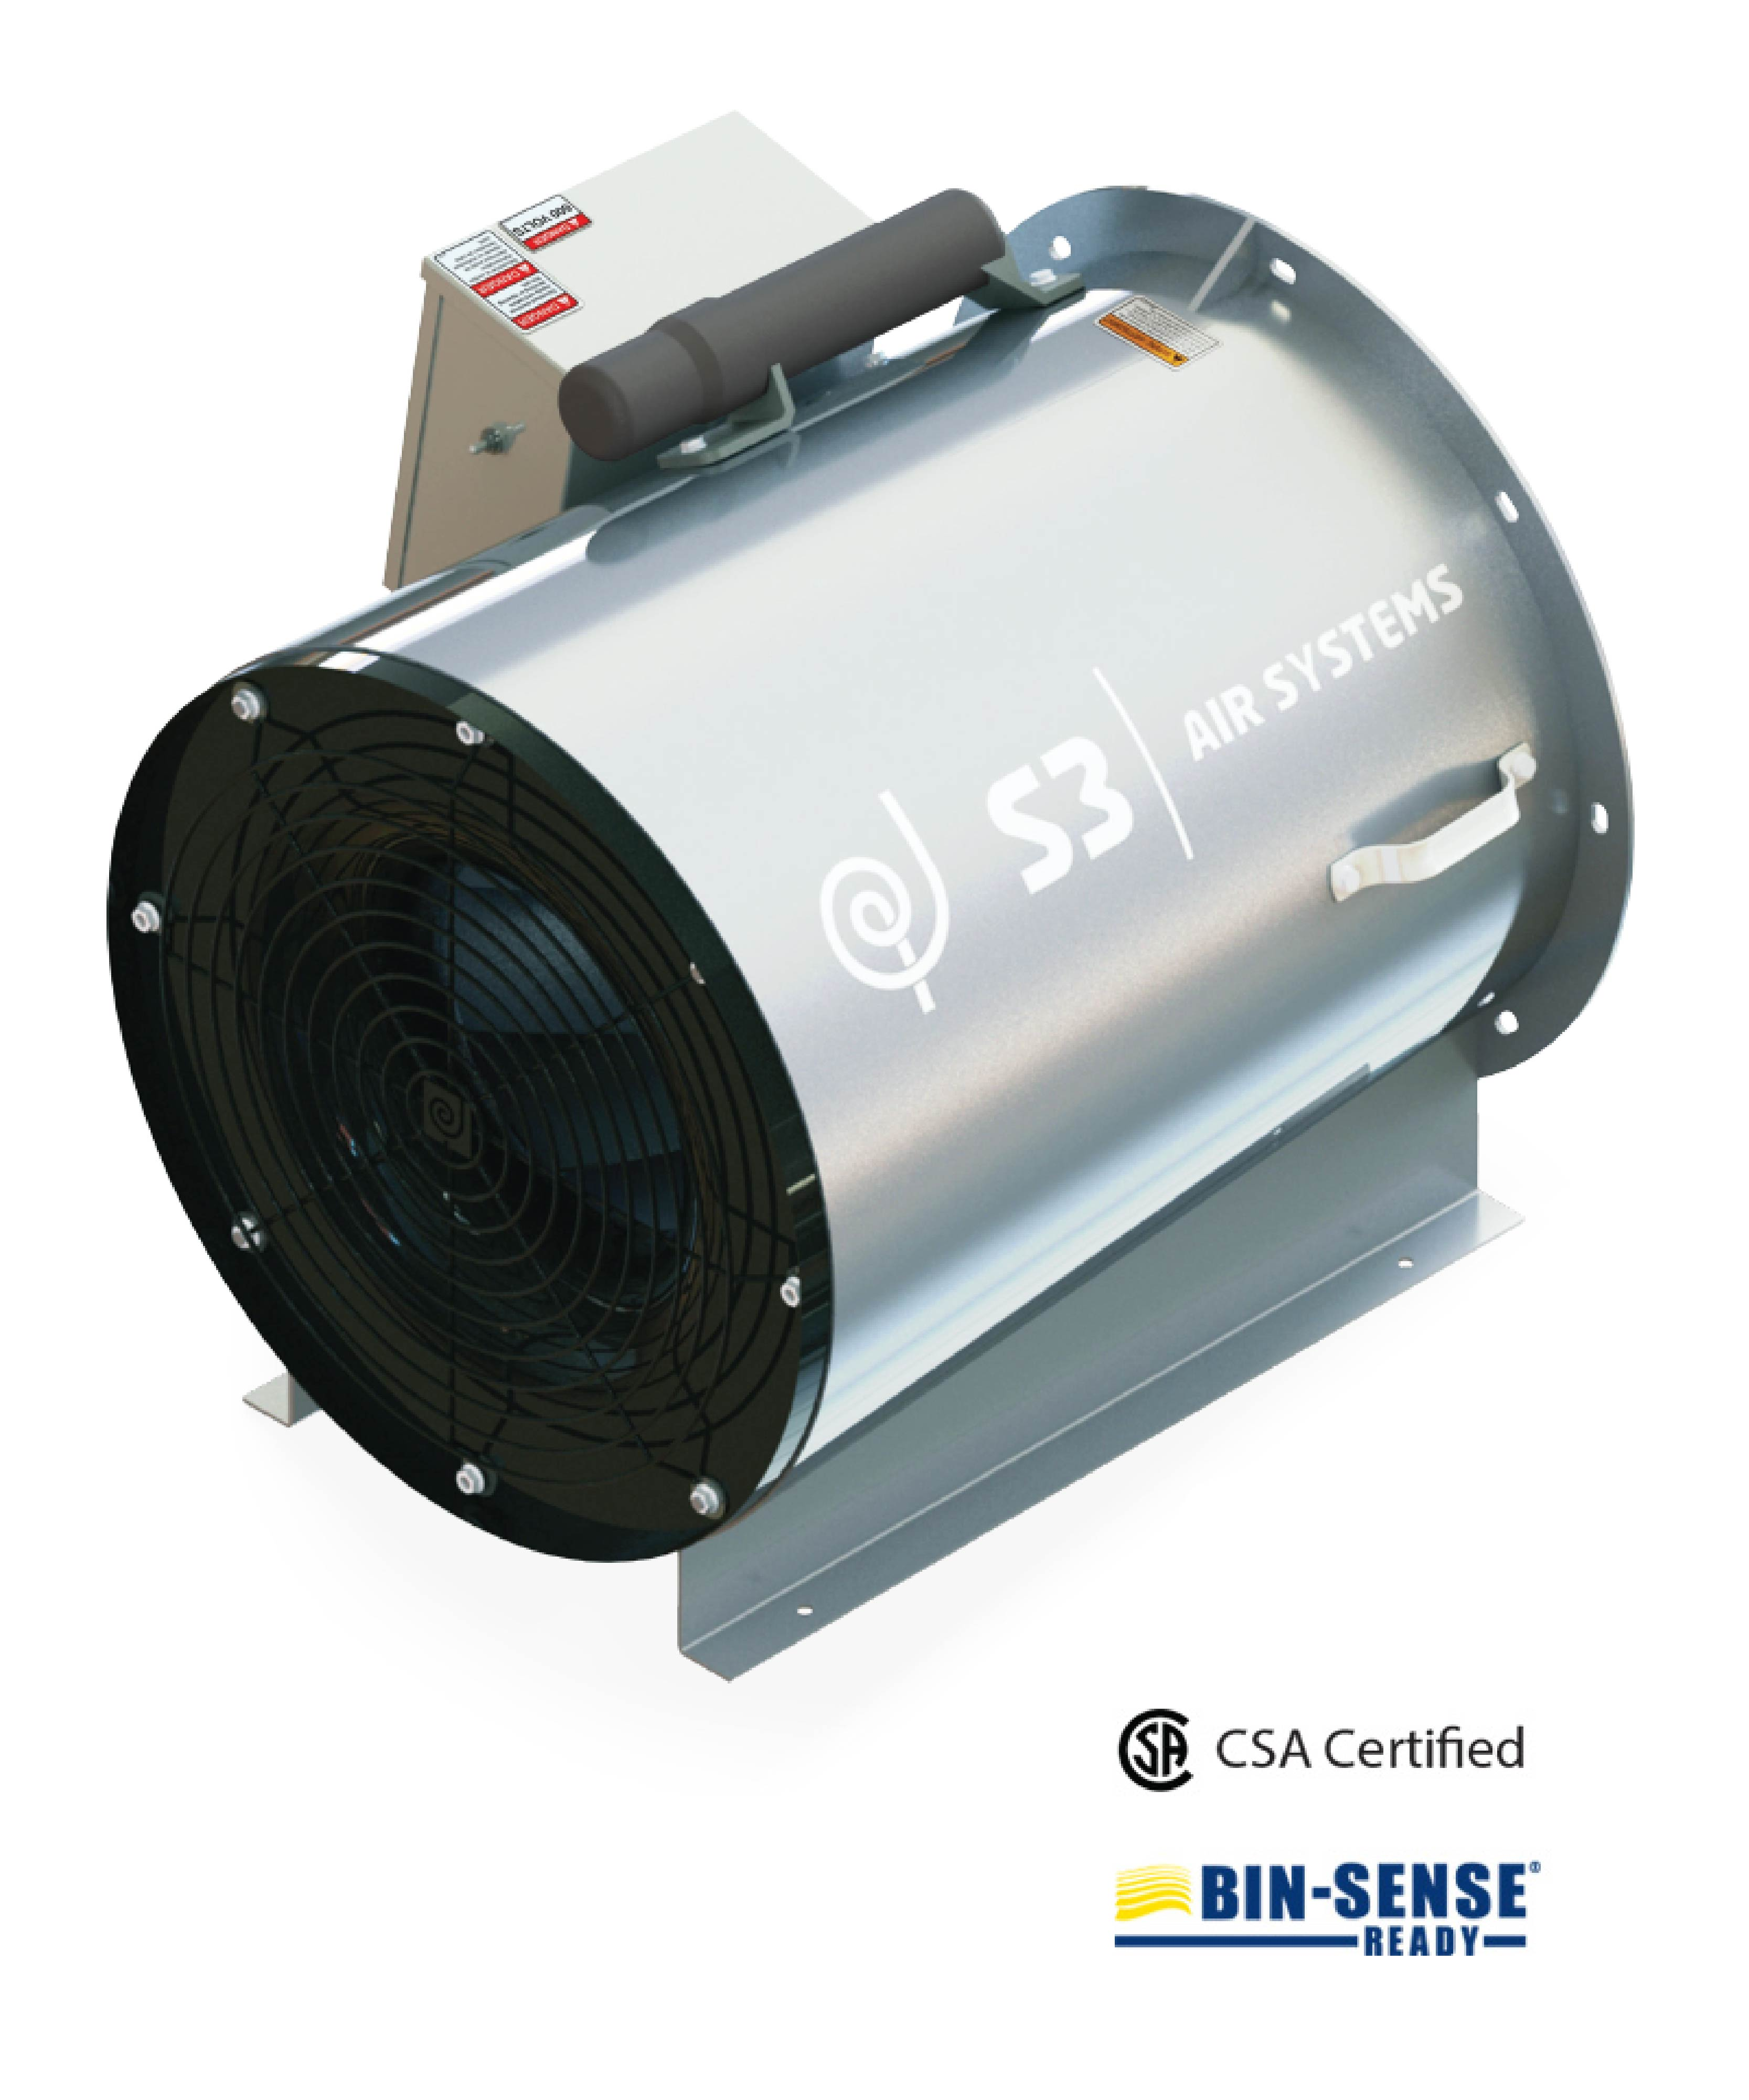 Turbo Aeration Fan